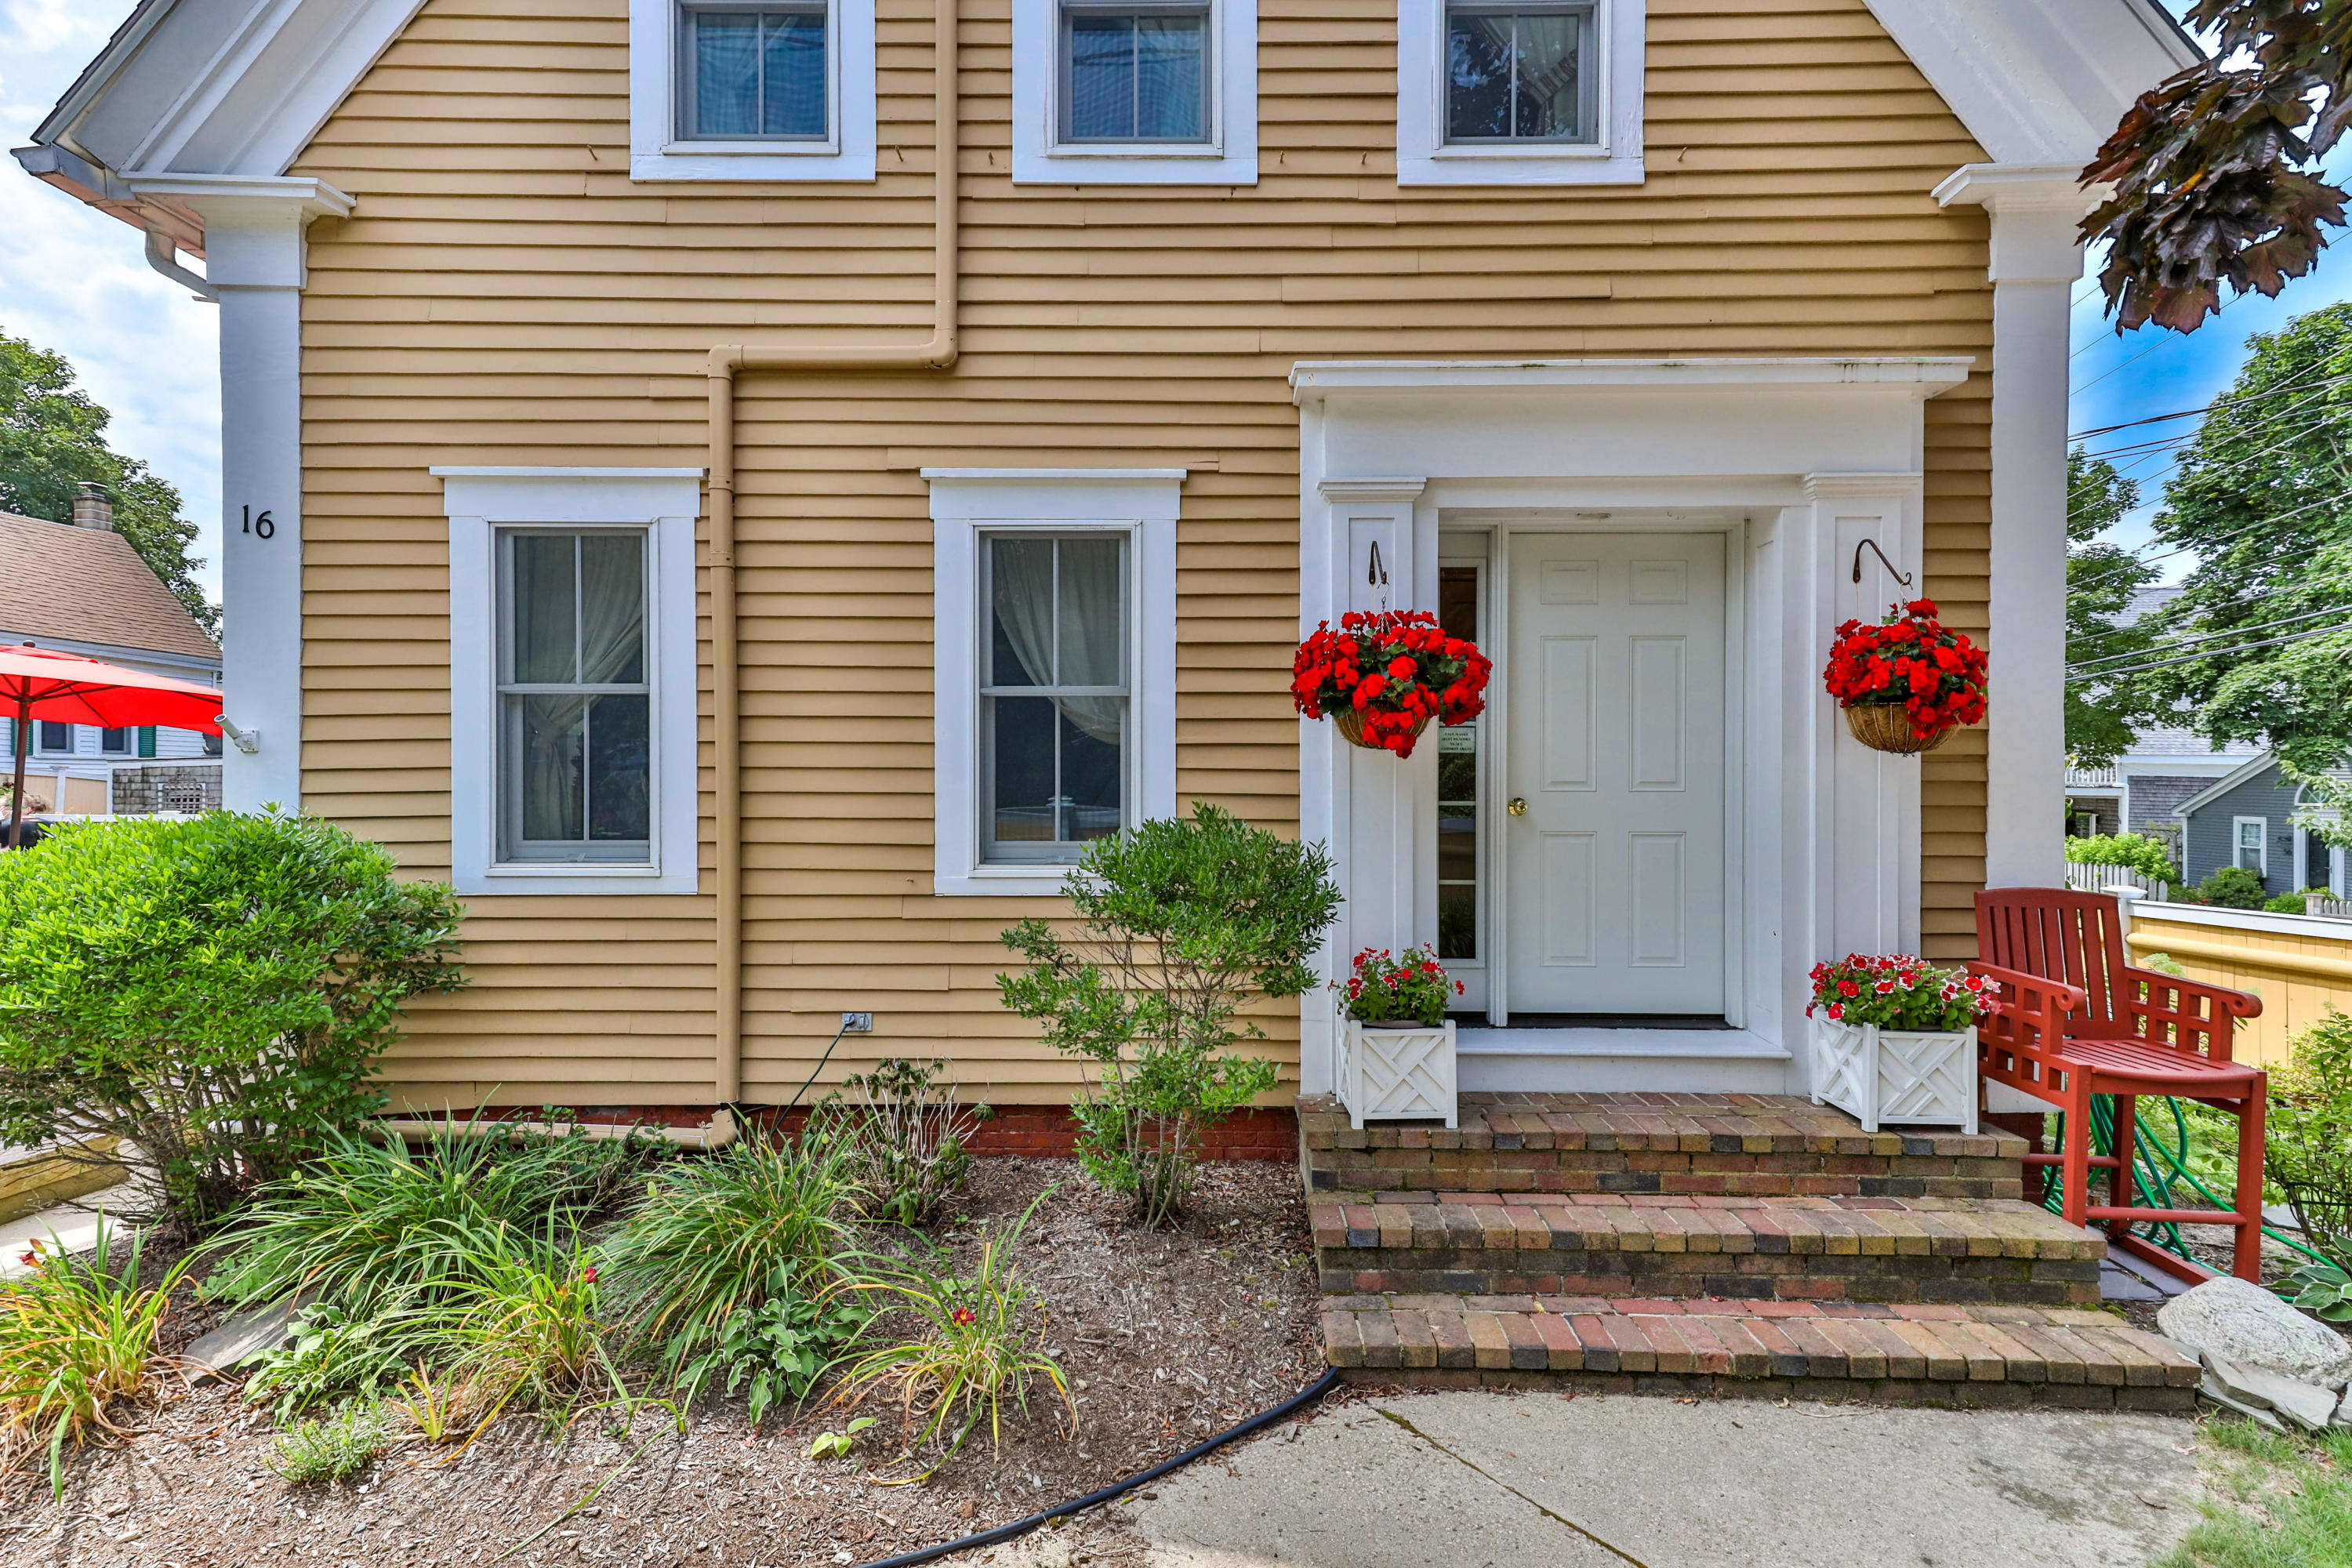 16 Winthrop Street, Provincetown MA, 02657 details